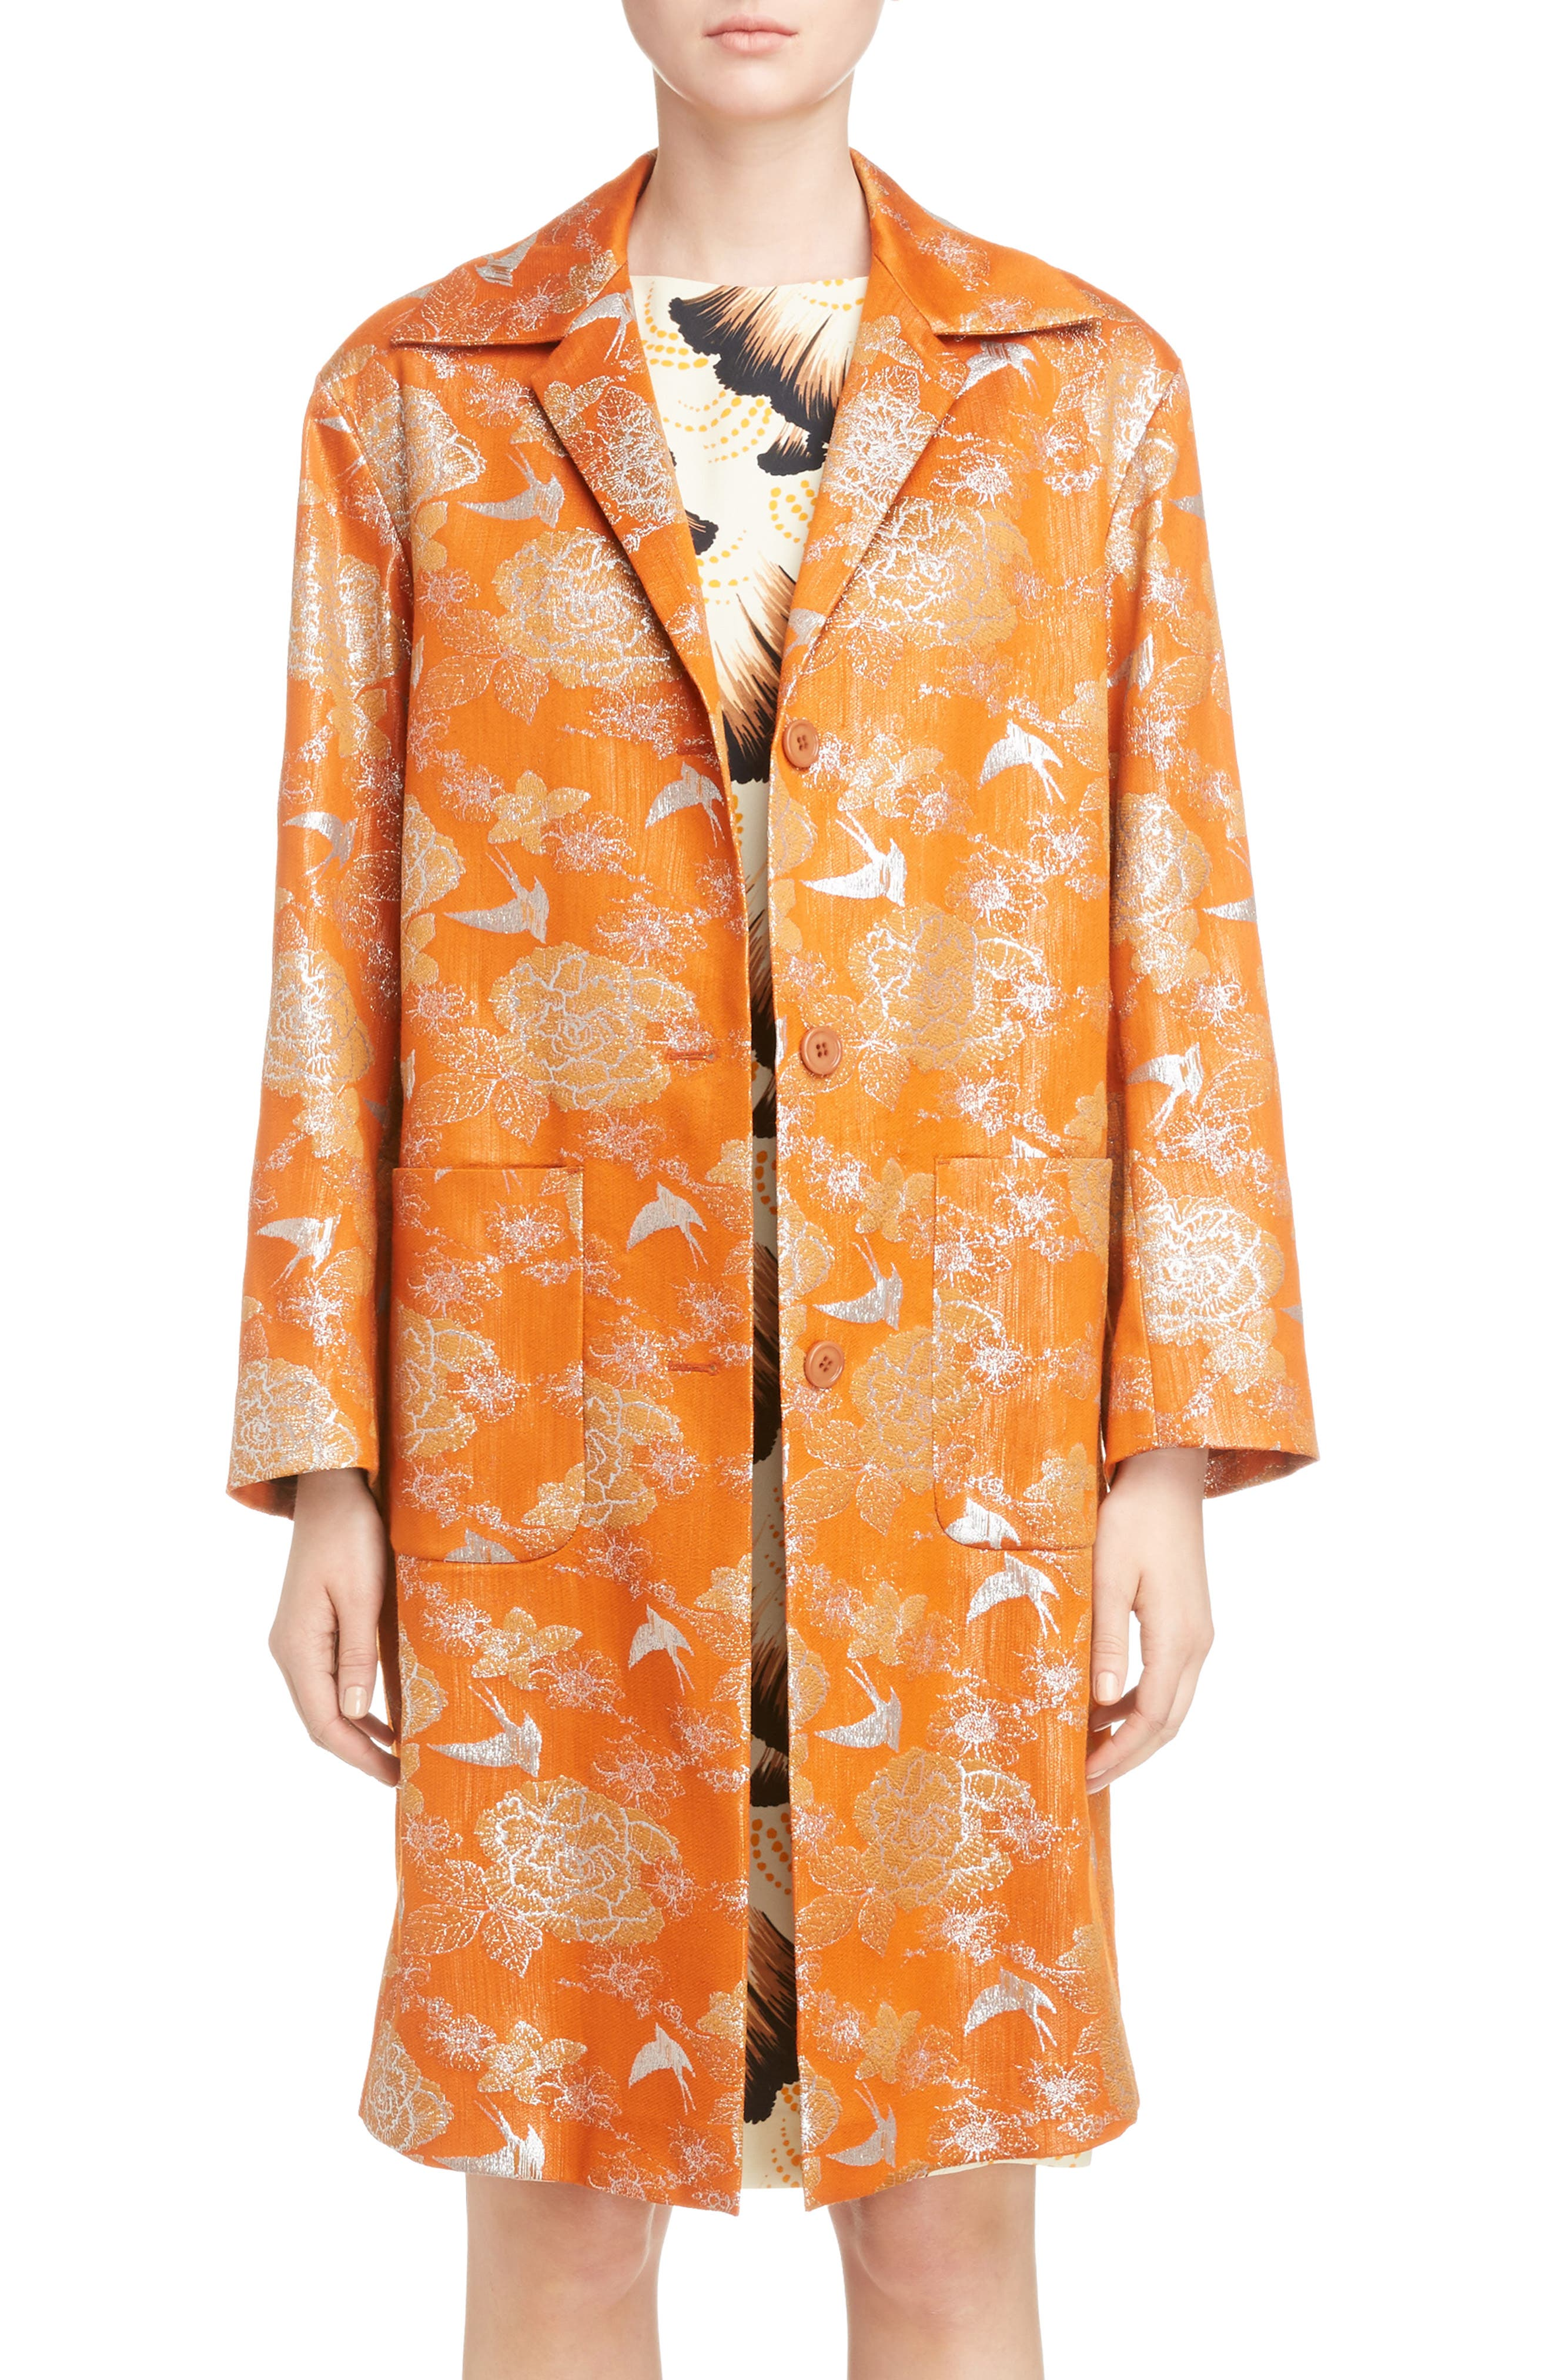 Silver Bird Jacquard Coat,                         Main,                         color, 800